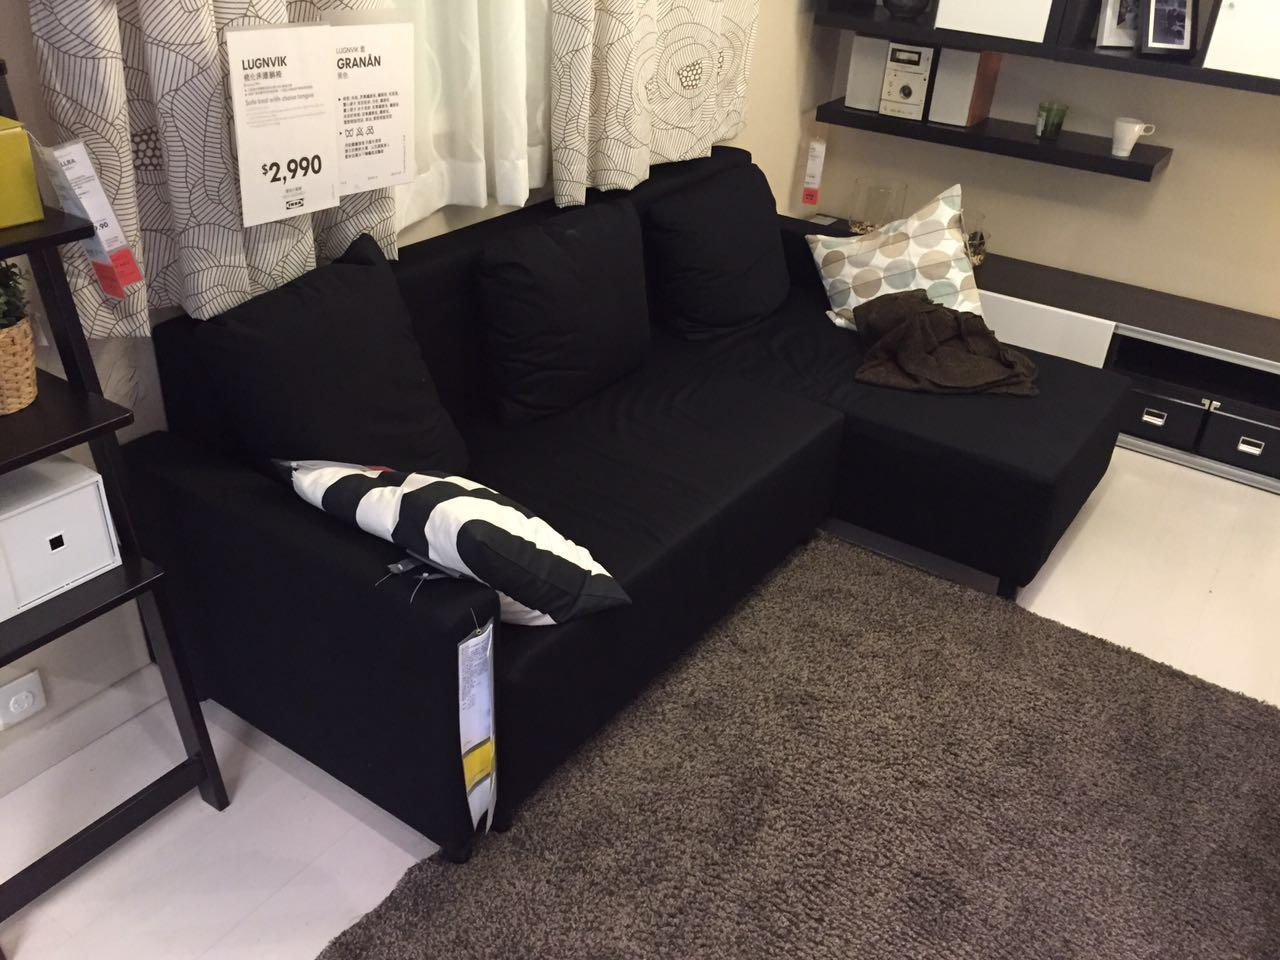 very new ikea black sofa chaise longue and double bed in one